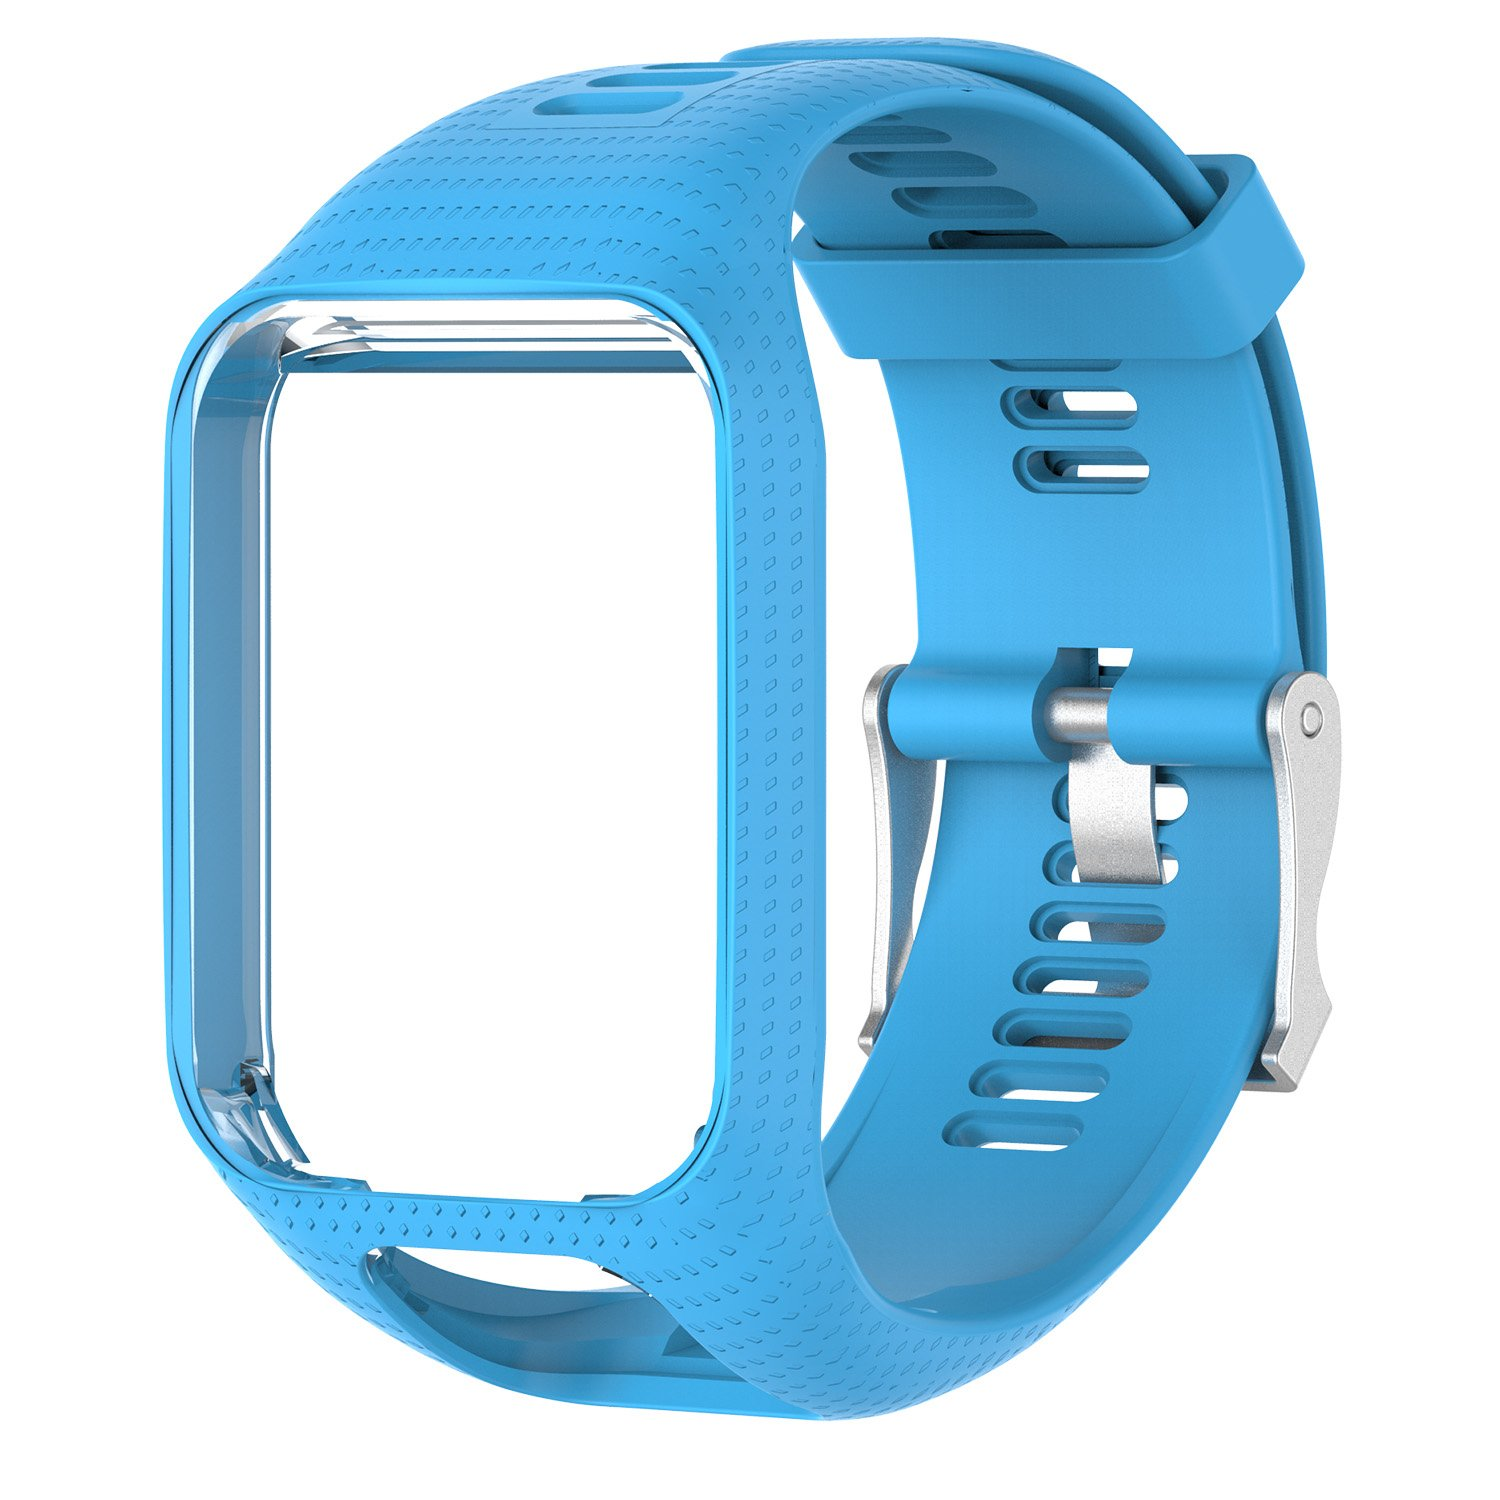 Amazon.com: FUNKID Compatible for Smartwatch Wirstbands ...